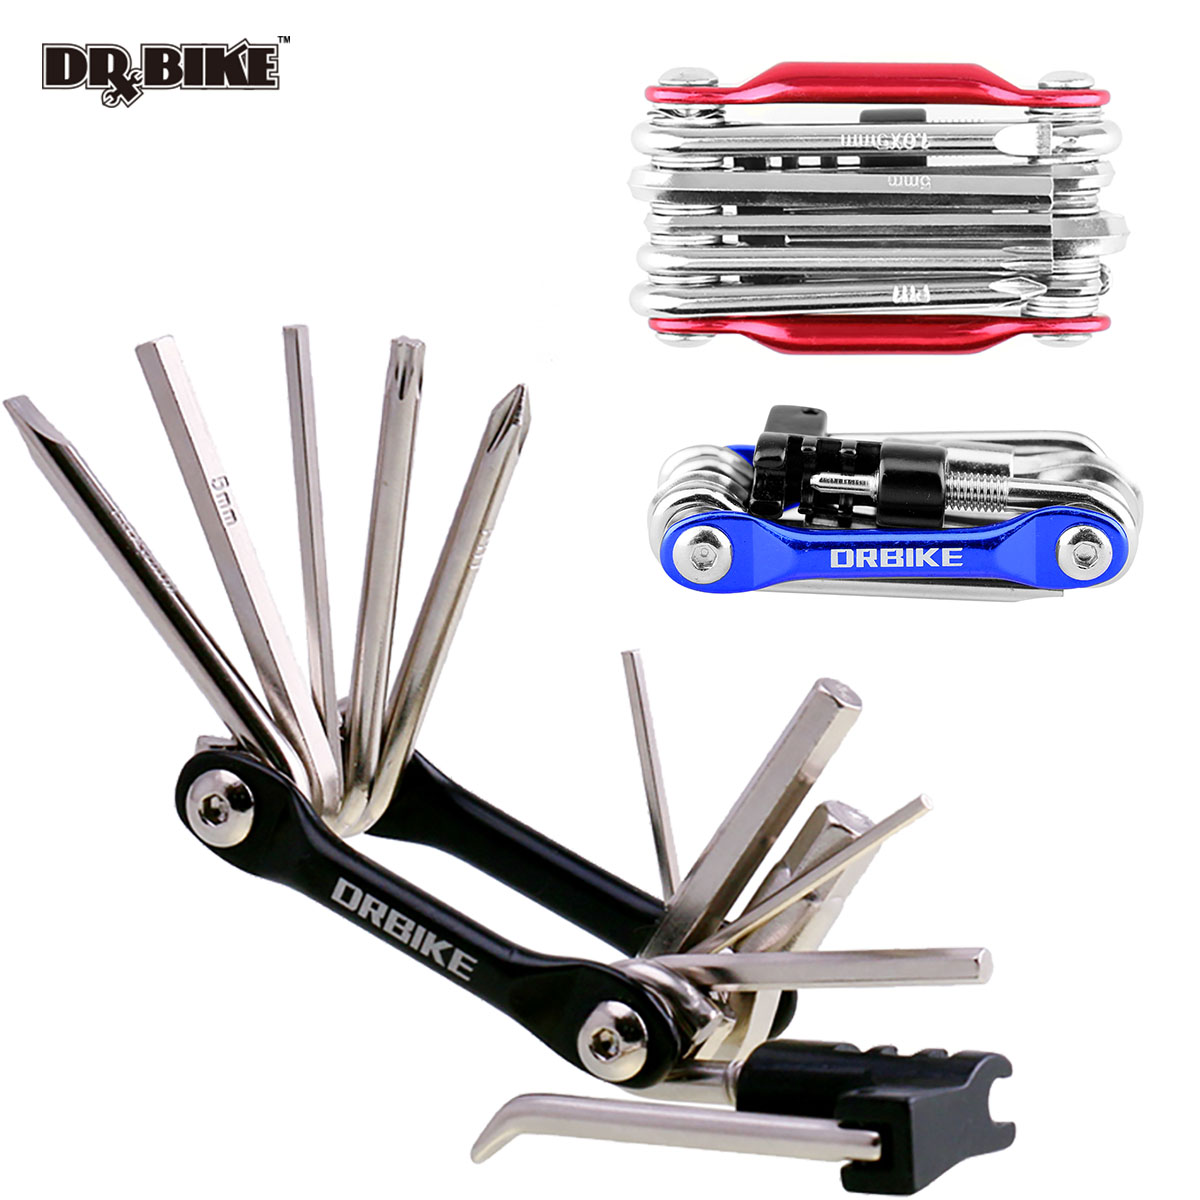 DRBIKE Bicycle multifunction tool kits multitool tire Repair Tool Set with screwdriver Chain Rivet Extractor for MTB Road Bike